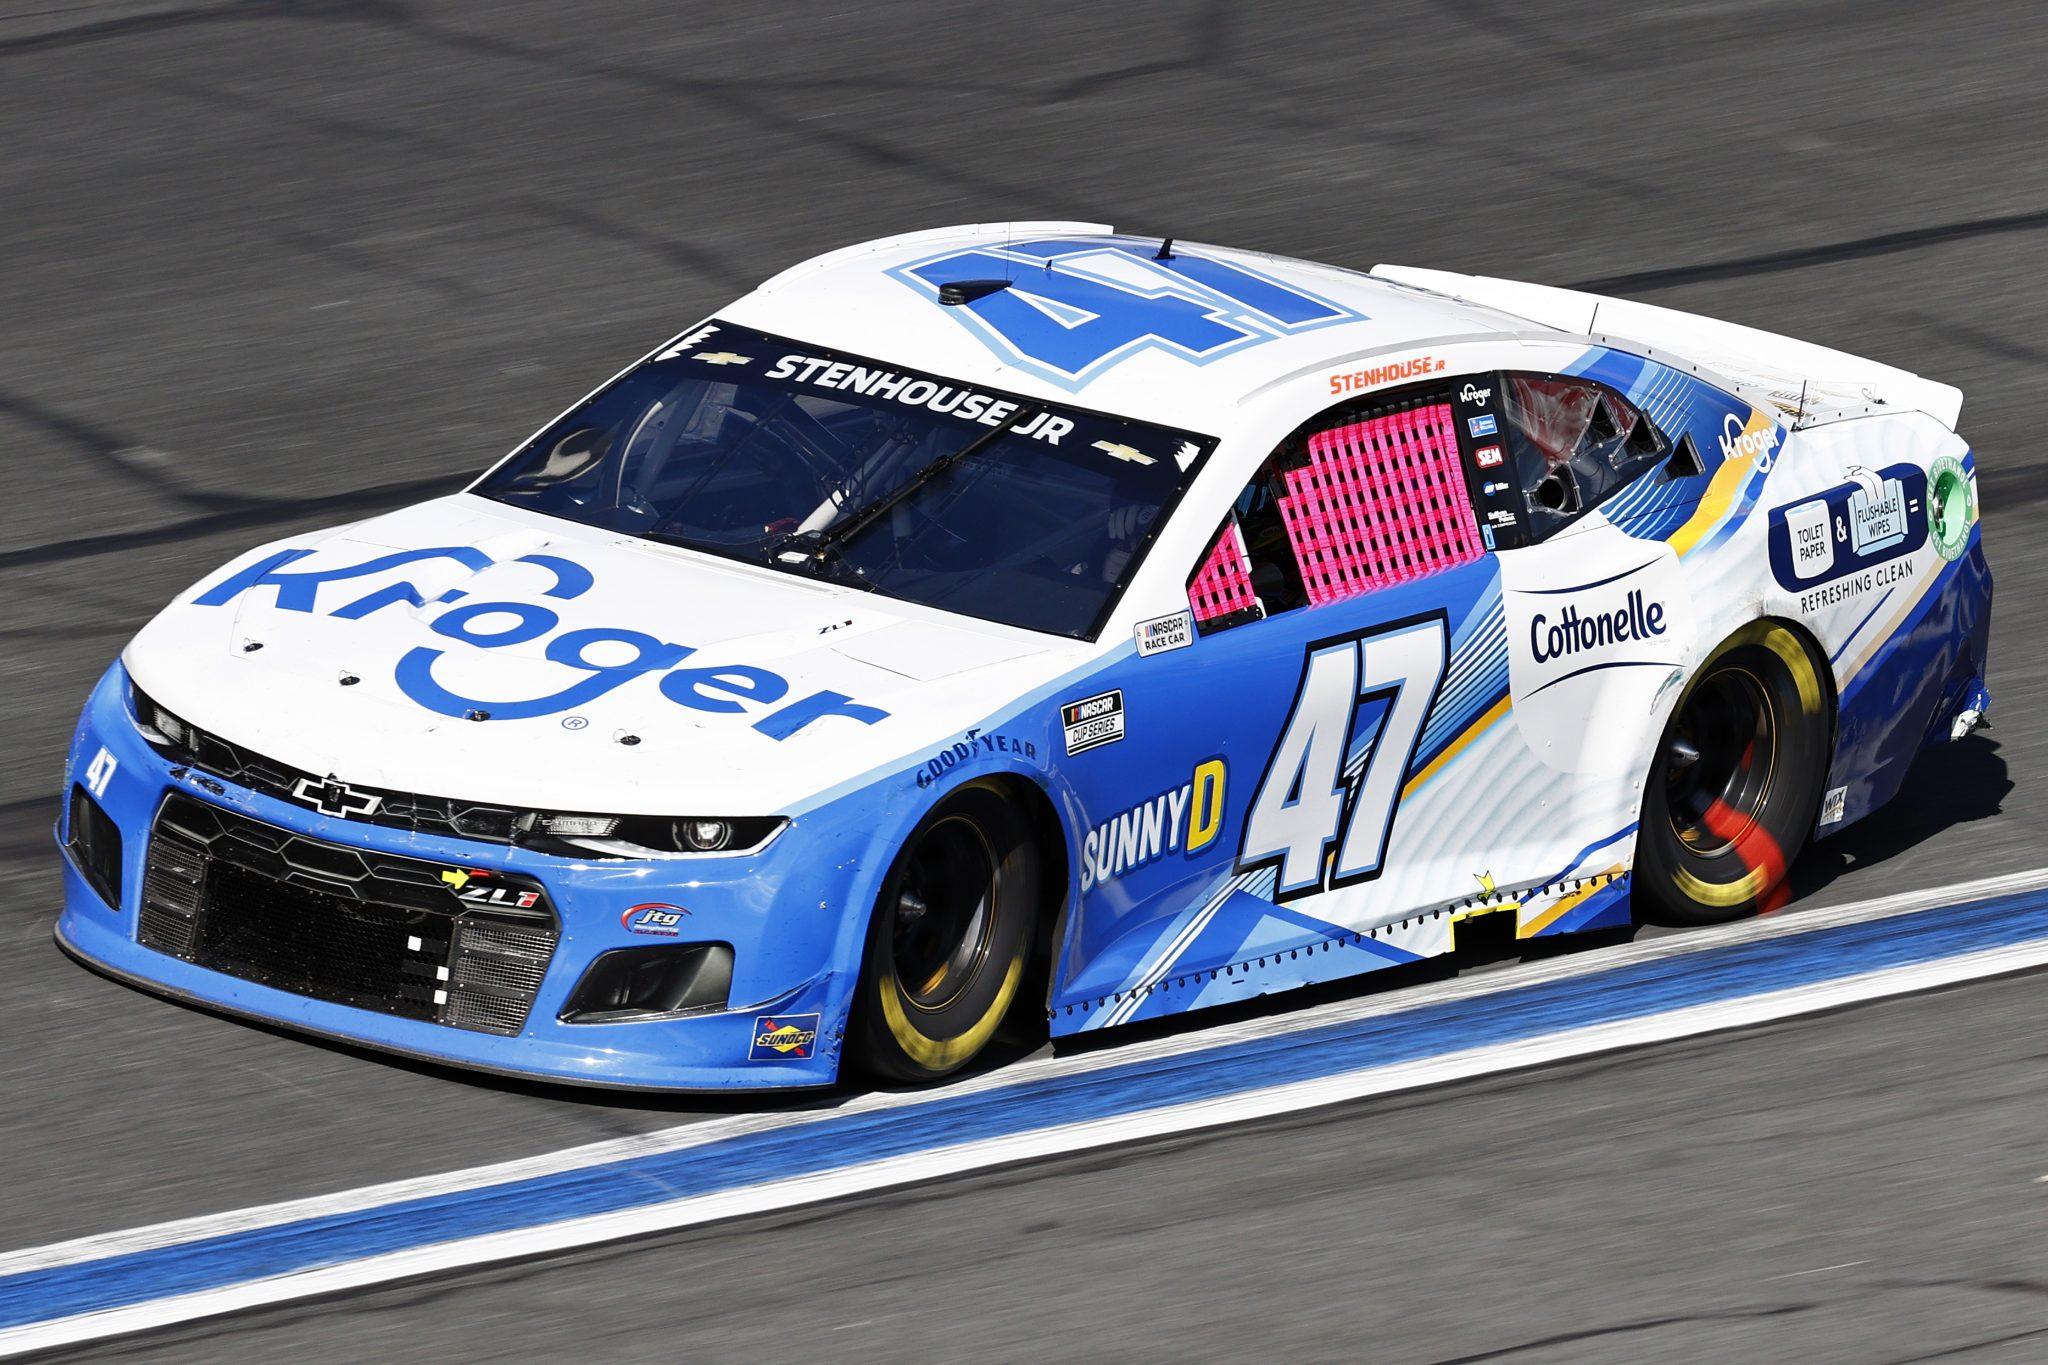 CONCORD, NORTH CAROLINA - OCTOBER 10: Ricky Stenhouse Jr., driver of the #47 Kroger/Cottonelle Chevrolet, drives during the NASCAR Cup Series Bank of America ROVAL 400 at Charlotte Motor Speedway on October 10, 2021 in Concord, North Carolina. (Photo by Jared C. Tilton/Getty Images) | Getty Images